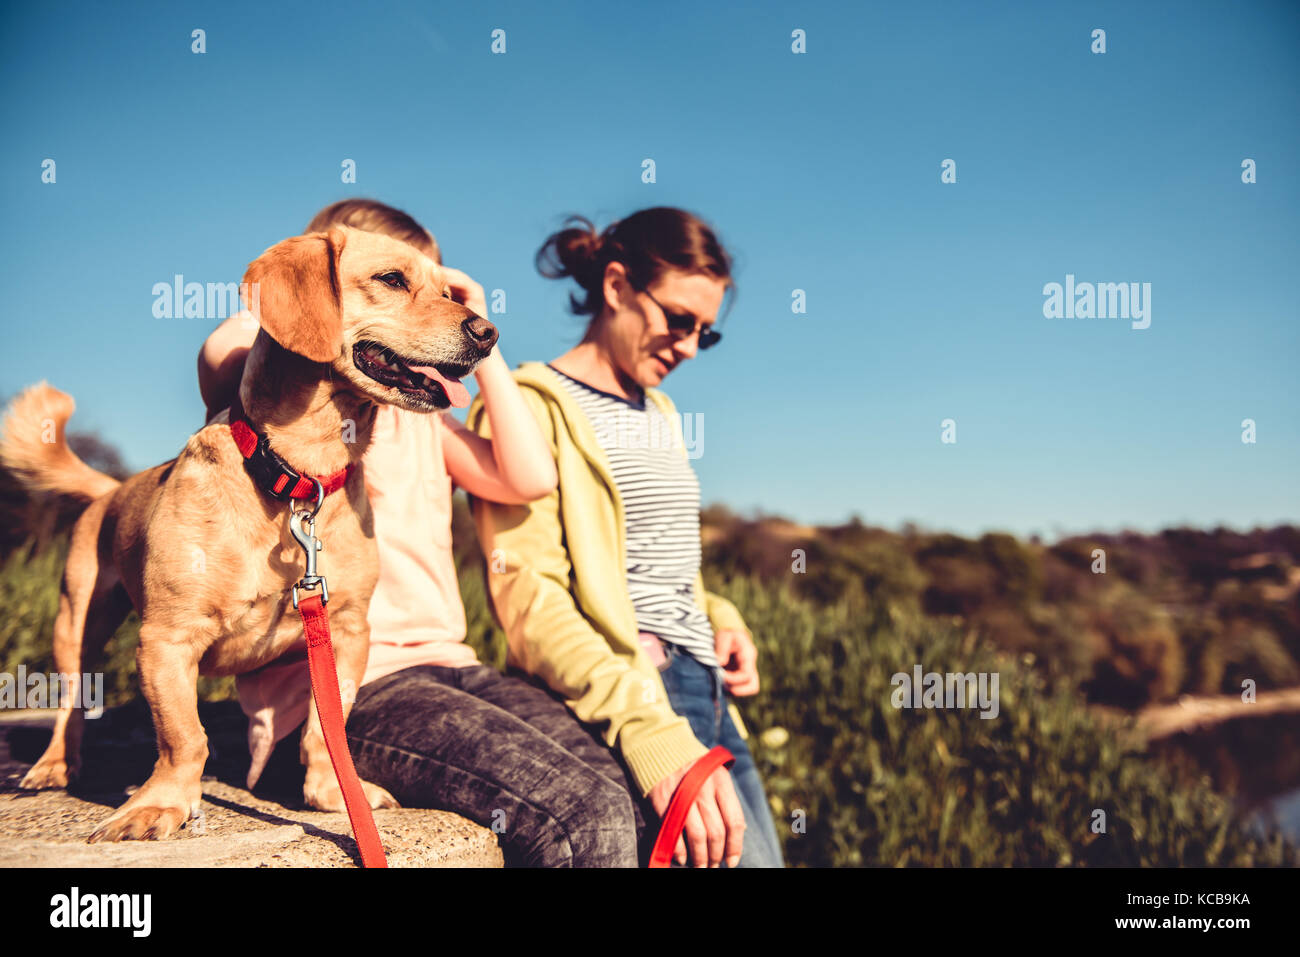 Small yellow dog and family enjoying together outdoors - Stock Image